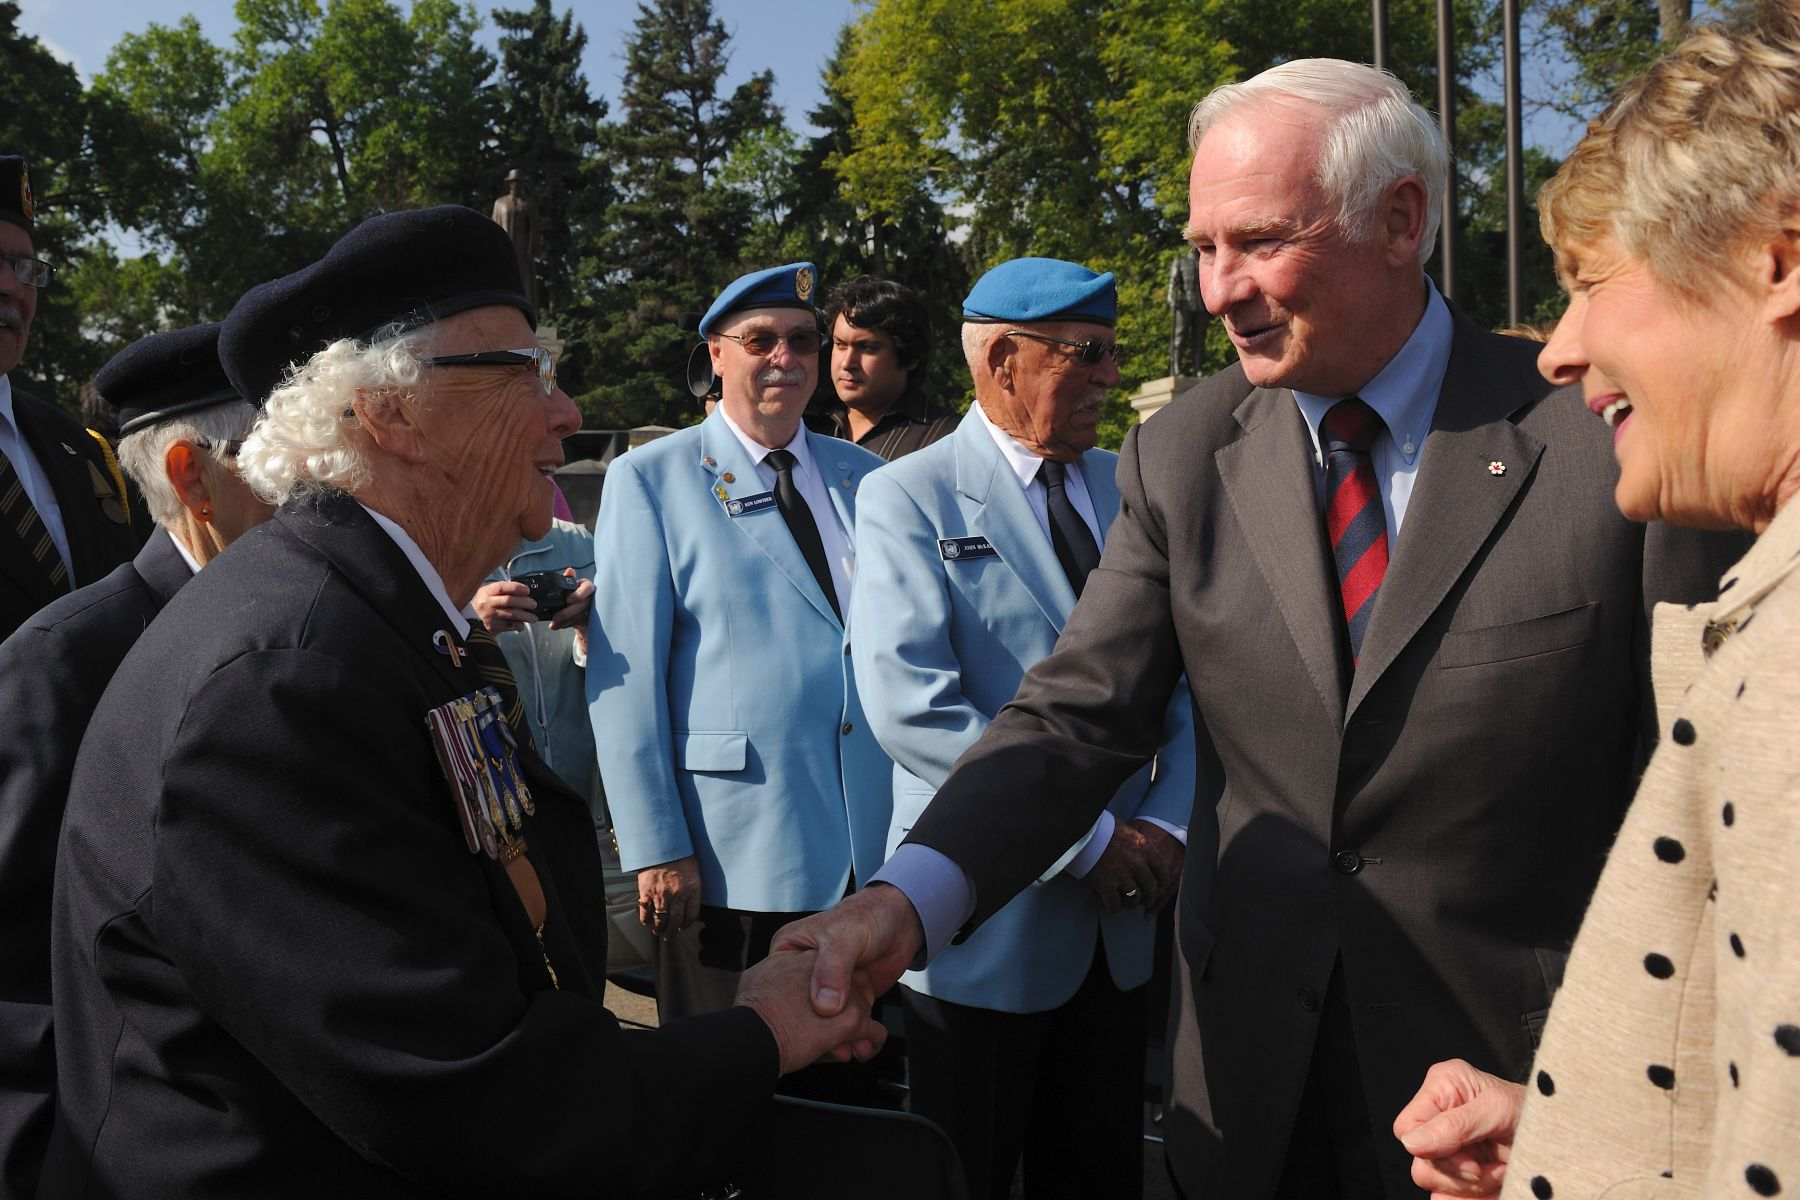 During their visit, Their Excellencies had the opportunity to speak with veterans from the Second World War, from Afghanistan and from international peacekeeping missions.